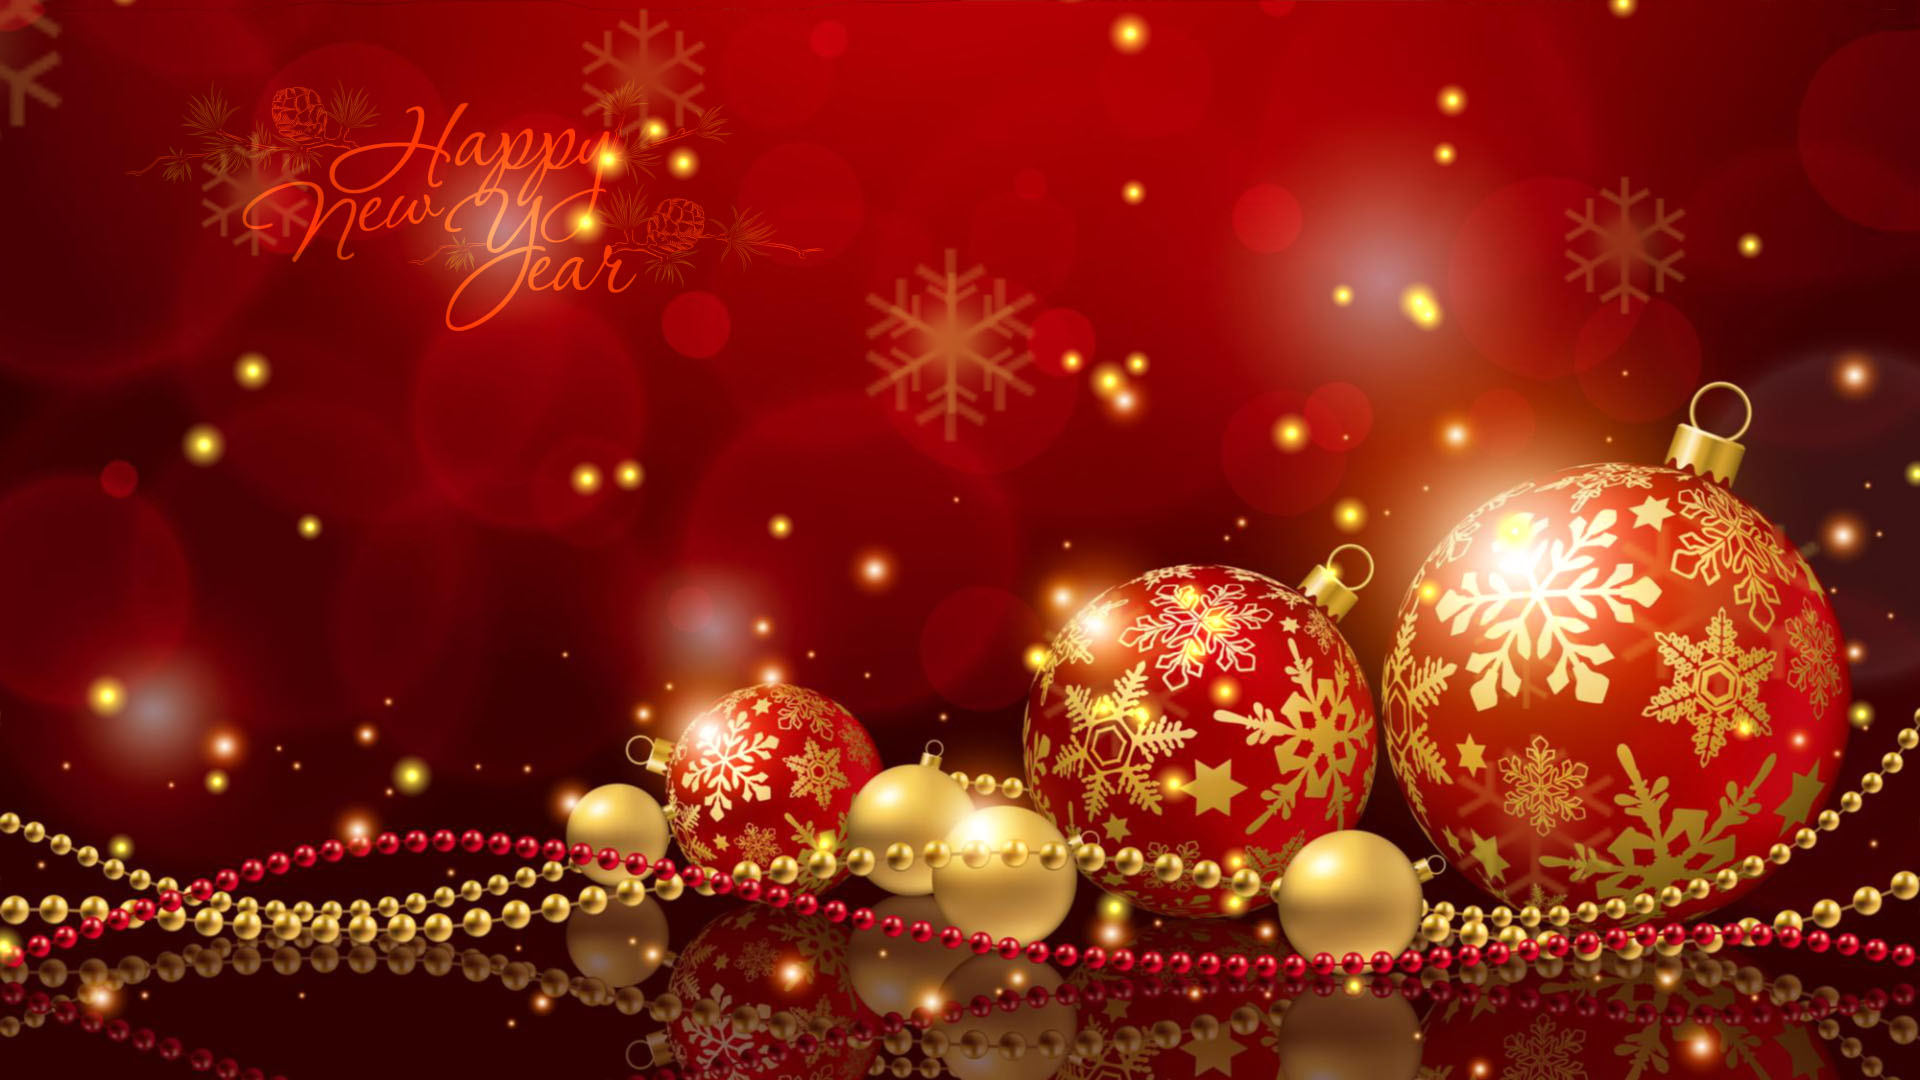 Free Animated Snow Fall Wallpaper New Year Happiness Screensaver For Windows Download New